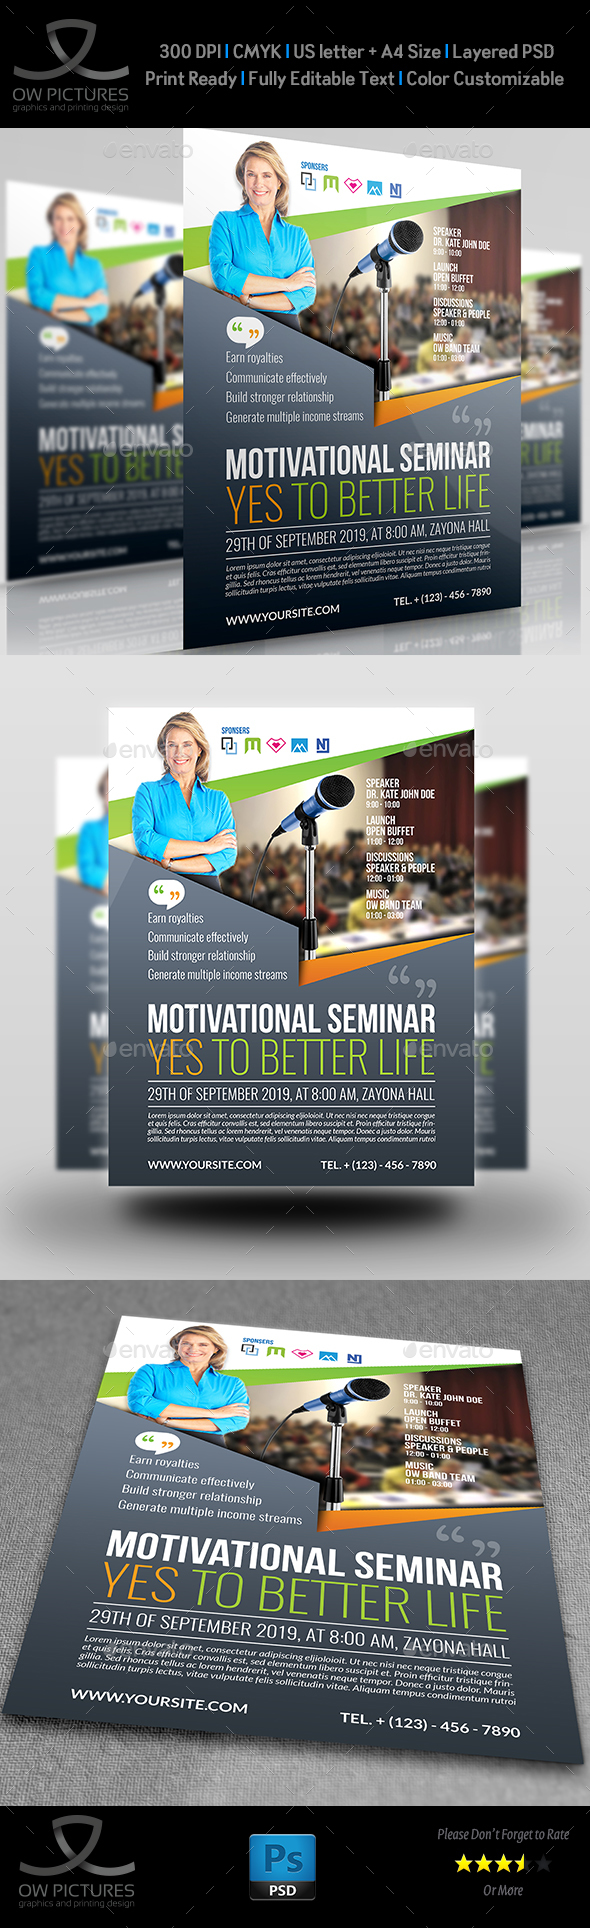 Seminar Flyer Templates By OWPictures GraphicRiver - Home buyer seminar flyer template